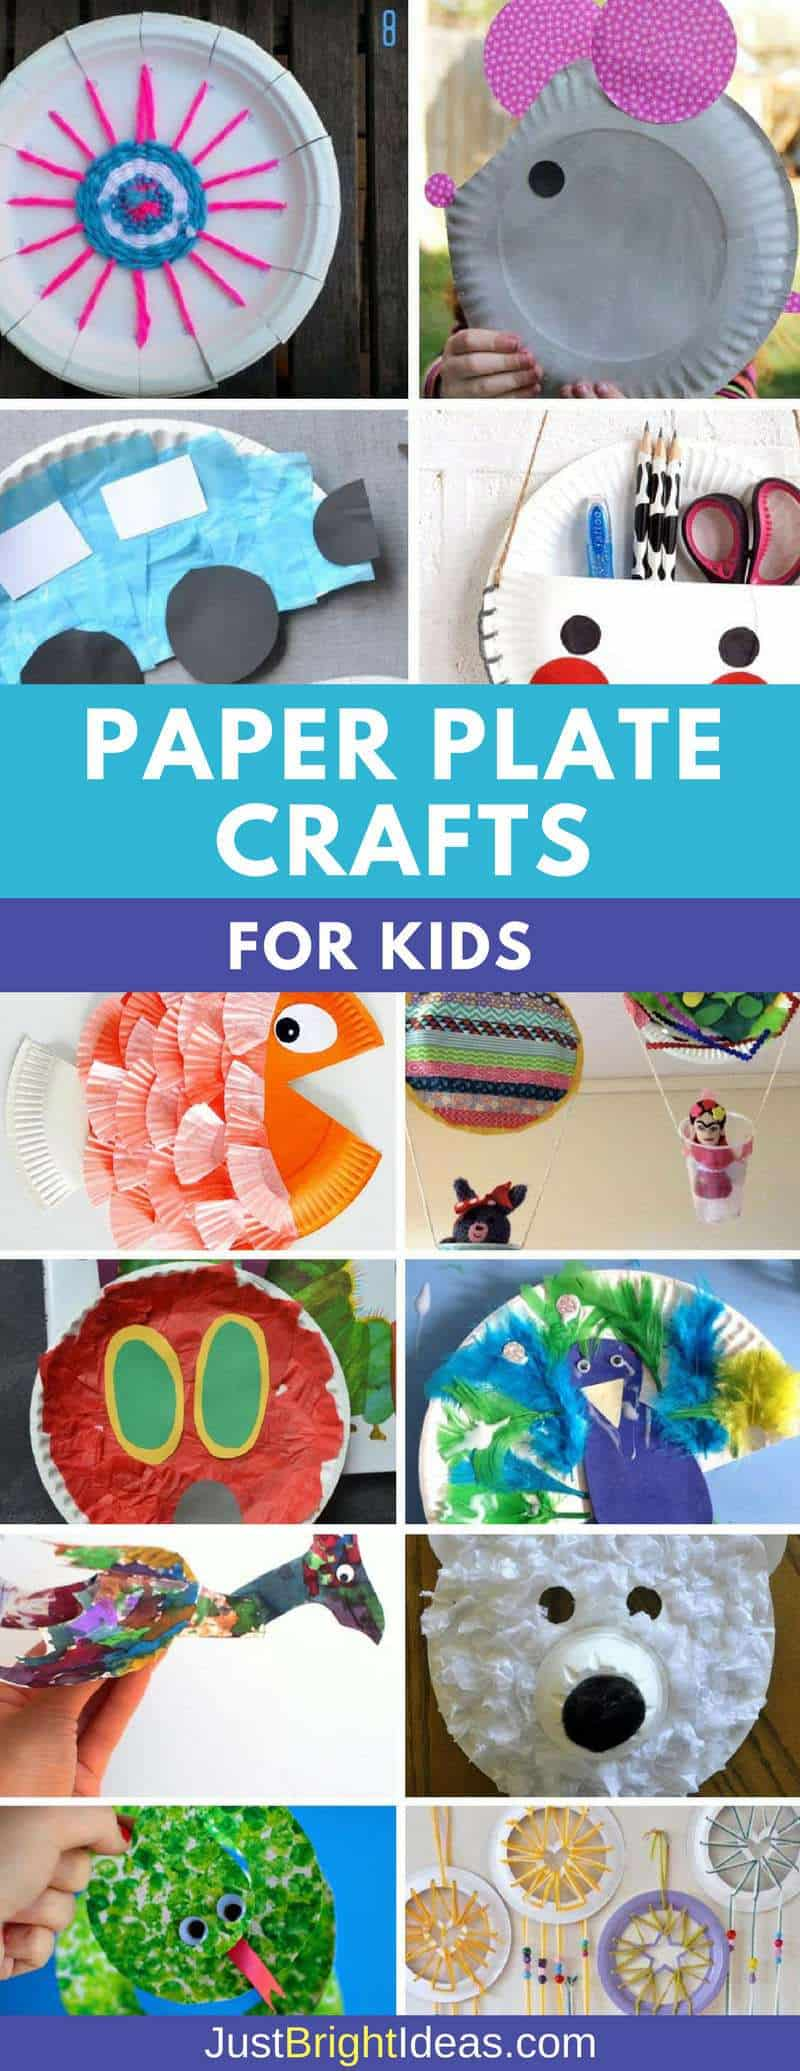 12 super easy paper plate crafts for kids of all ages to for Fun crafts for all ages